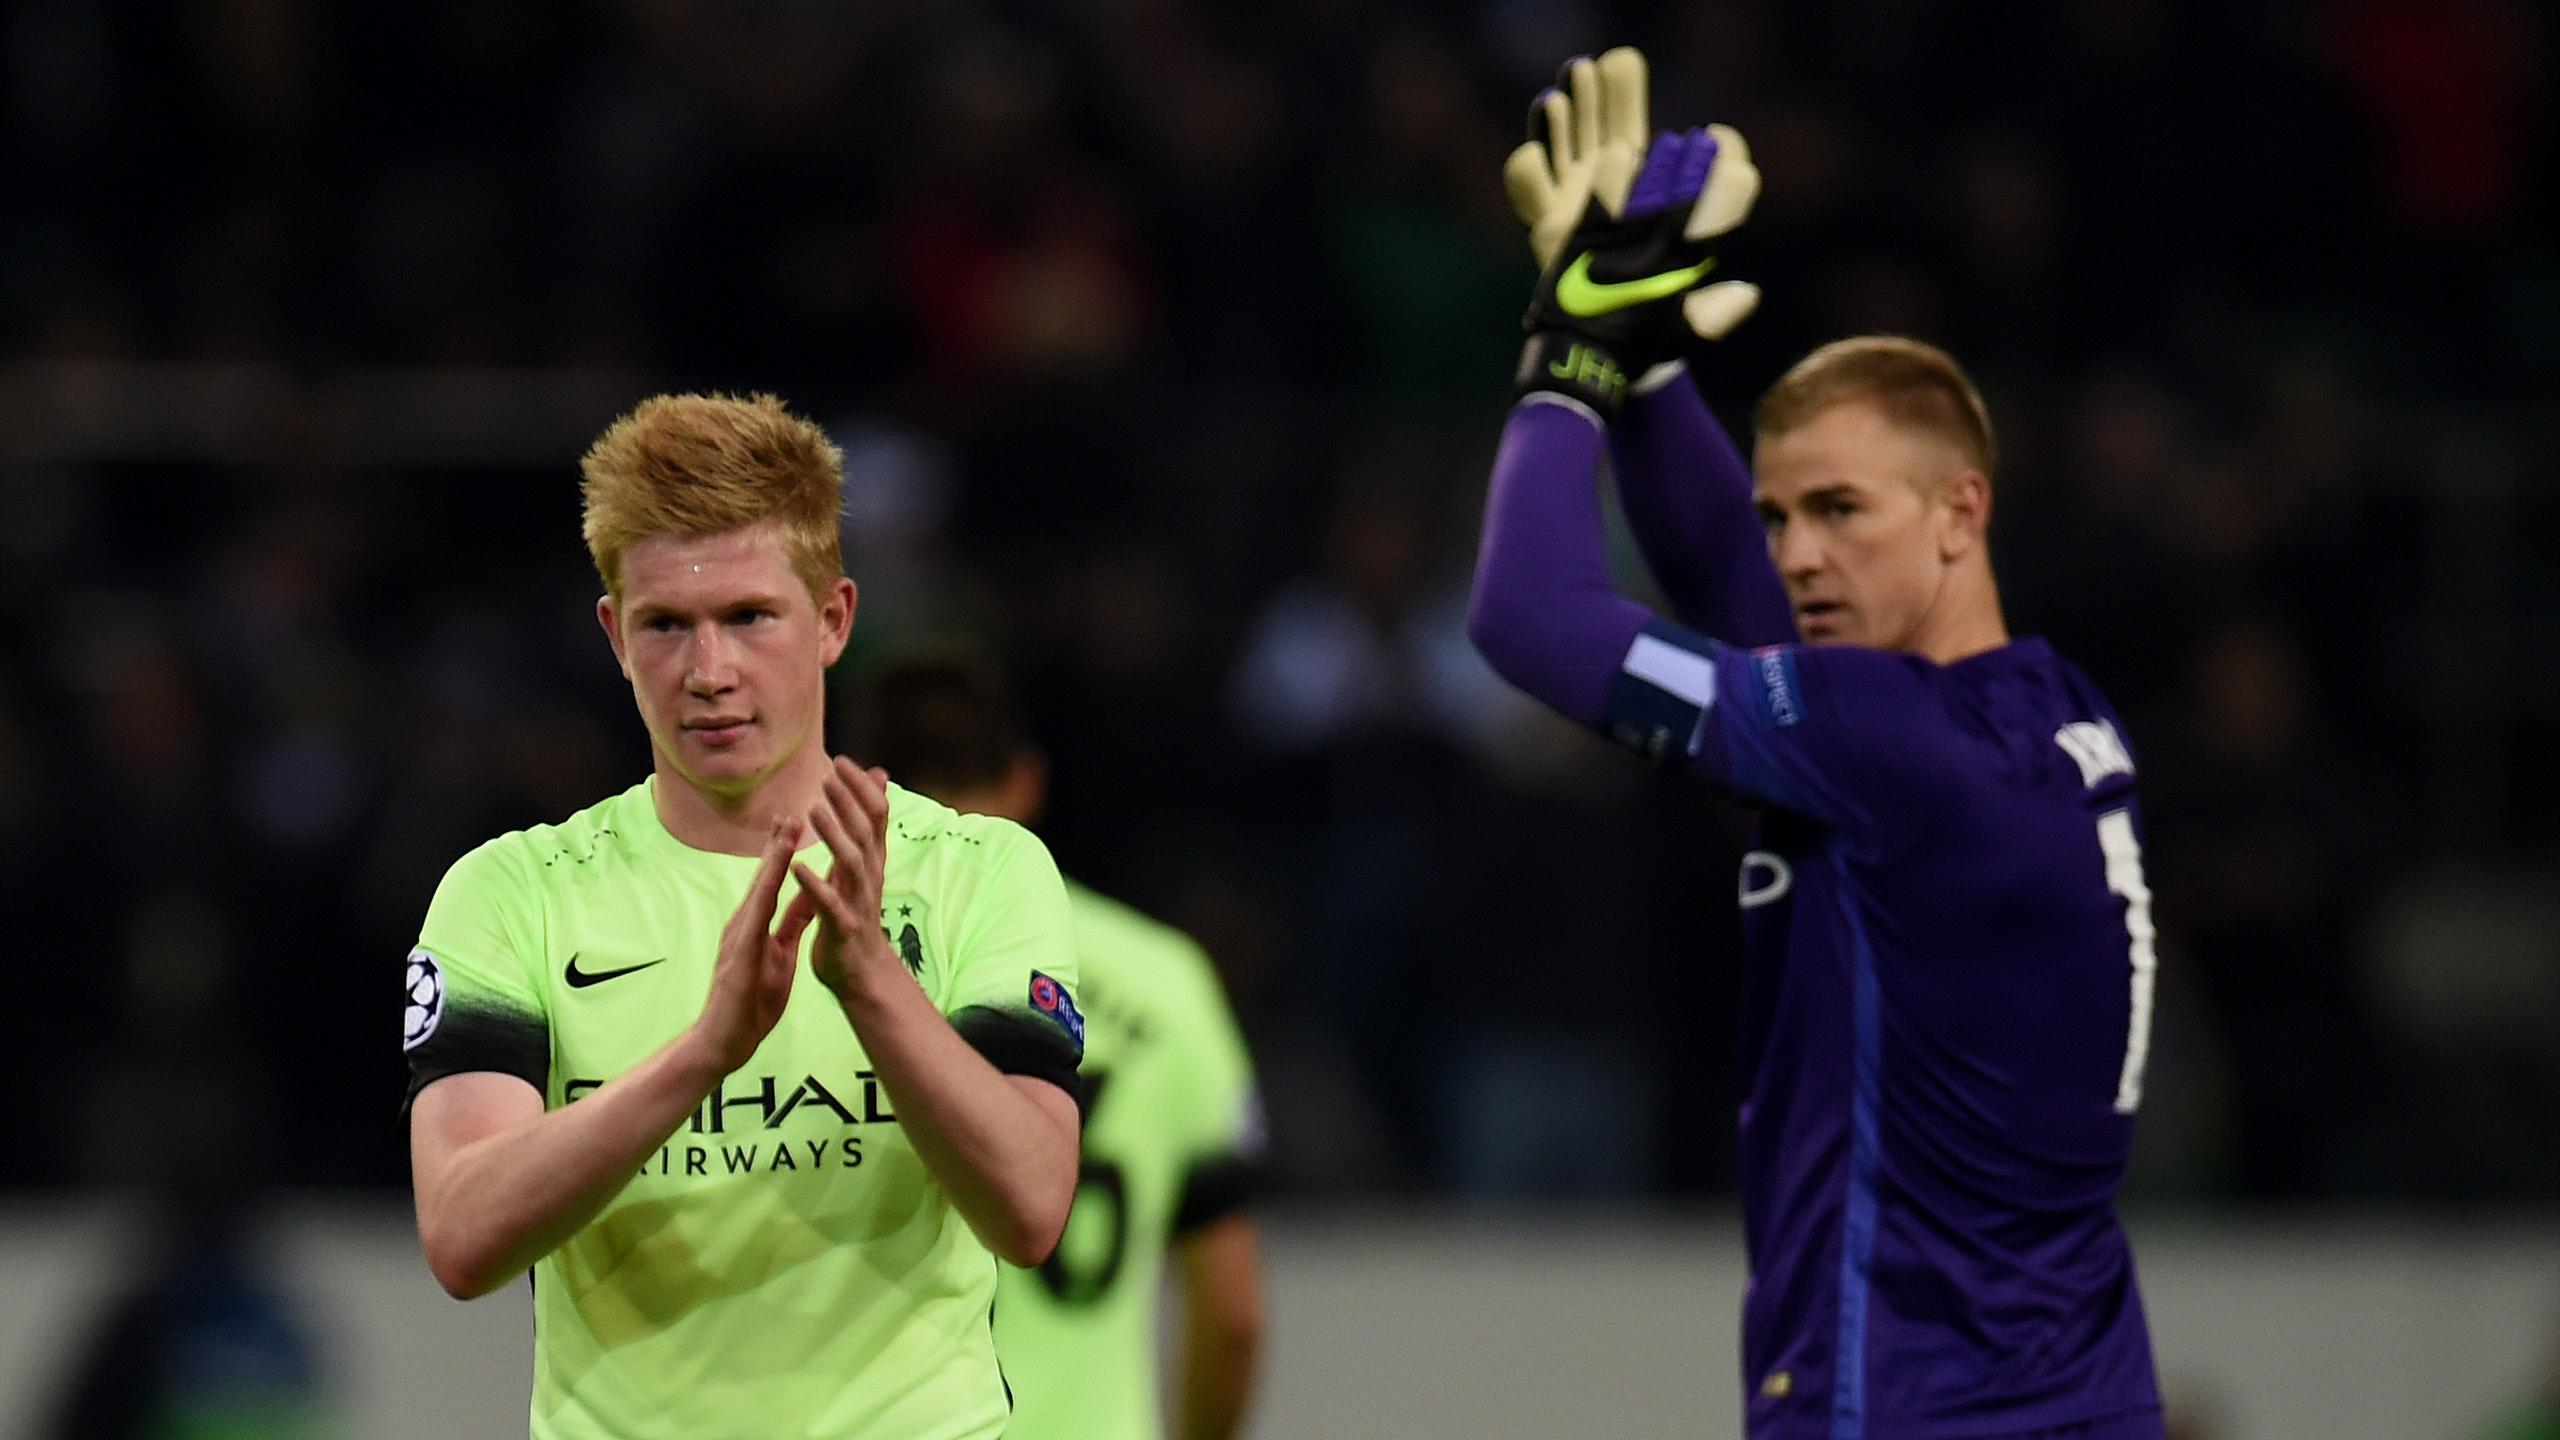 Manchester City's Belgian forward Kevin De Bruyne (L) and Joe Hart celebrate after the UEFA Champions League first-leg Group D football match between Borussia Monchengladbach and Manchester City in Monchengladbach, western Germany on September 30, 2015